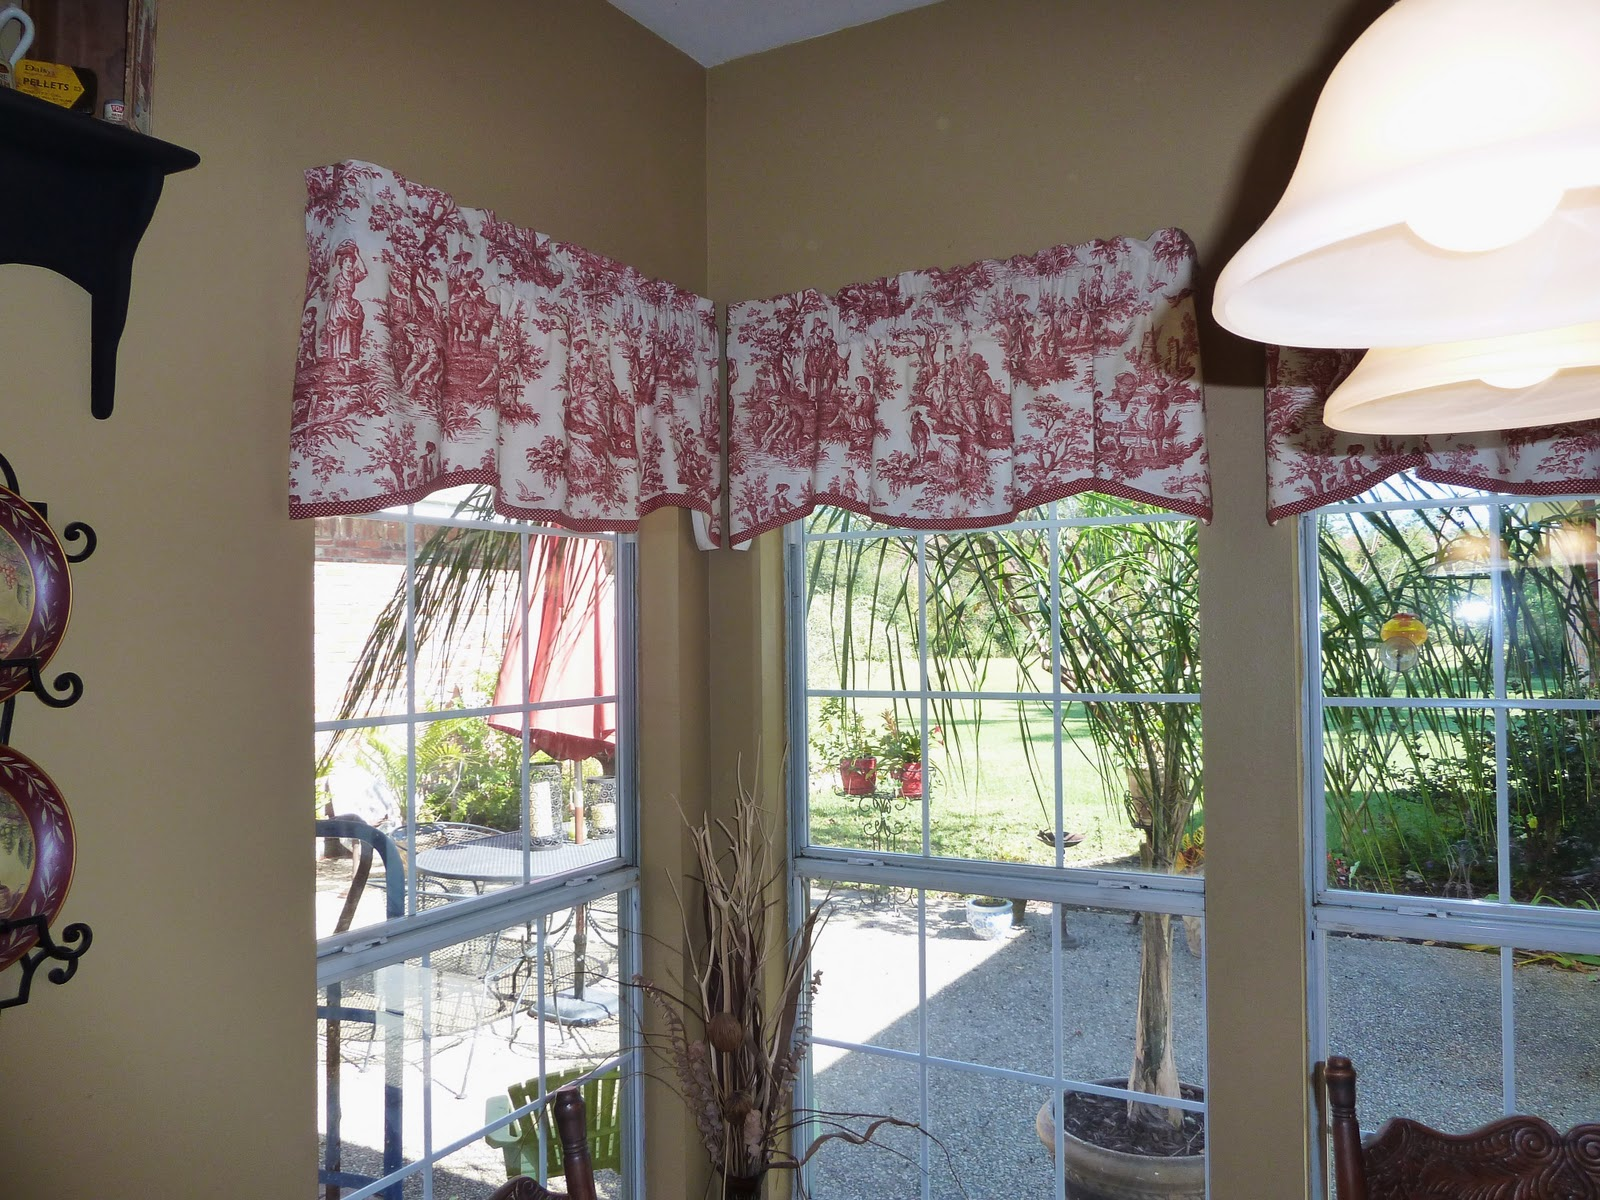 clearance ideas purple size drapes full valance solaris curtains clearanceclearance valances at of impressive girls photo sale curtain and walmart for